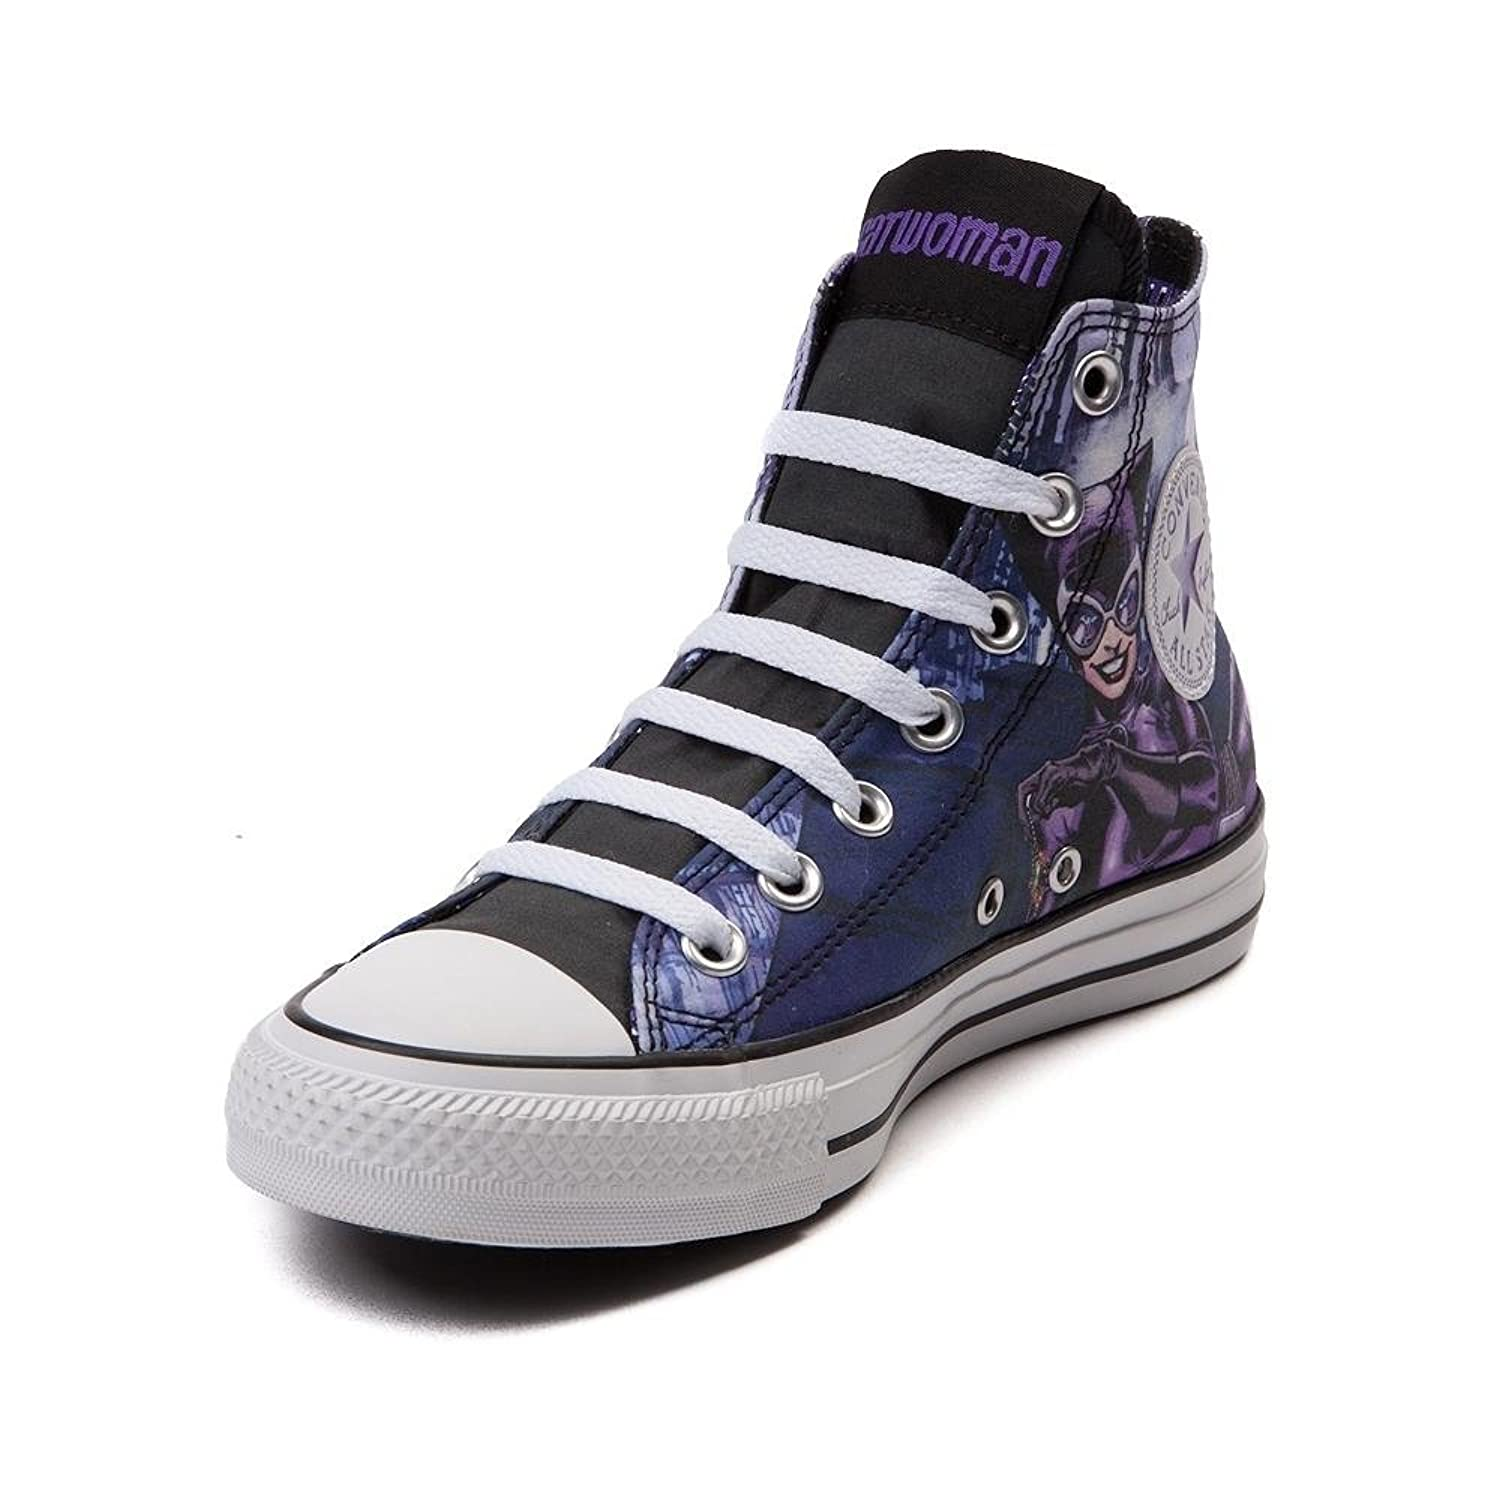 2b19afb5c386df ... cheapest amazon converse dc comics catwoman chuck taylor all star  sneakers limited fashion sneakers 5fd42 9126b